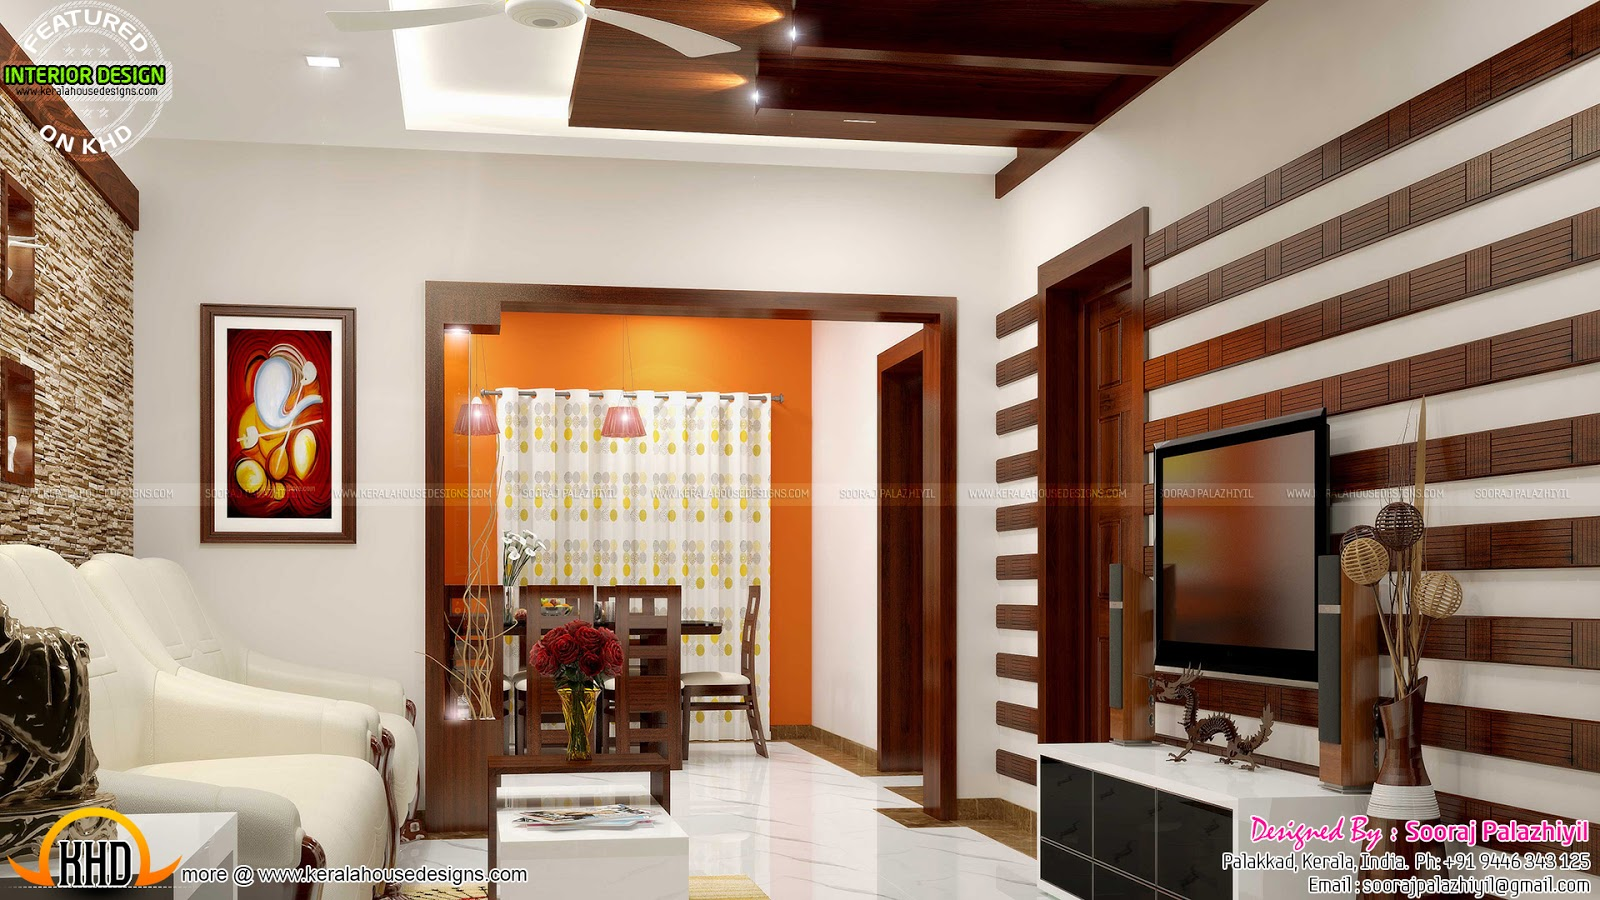 Interior design for apartments in kerala simple for Simple interior ideas